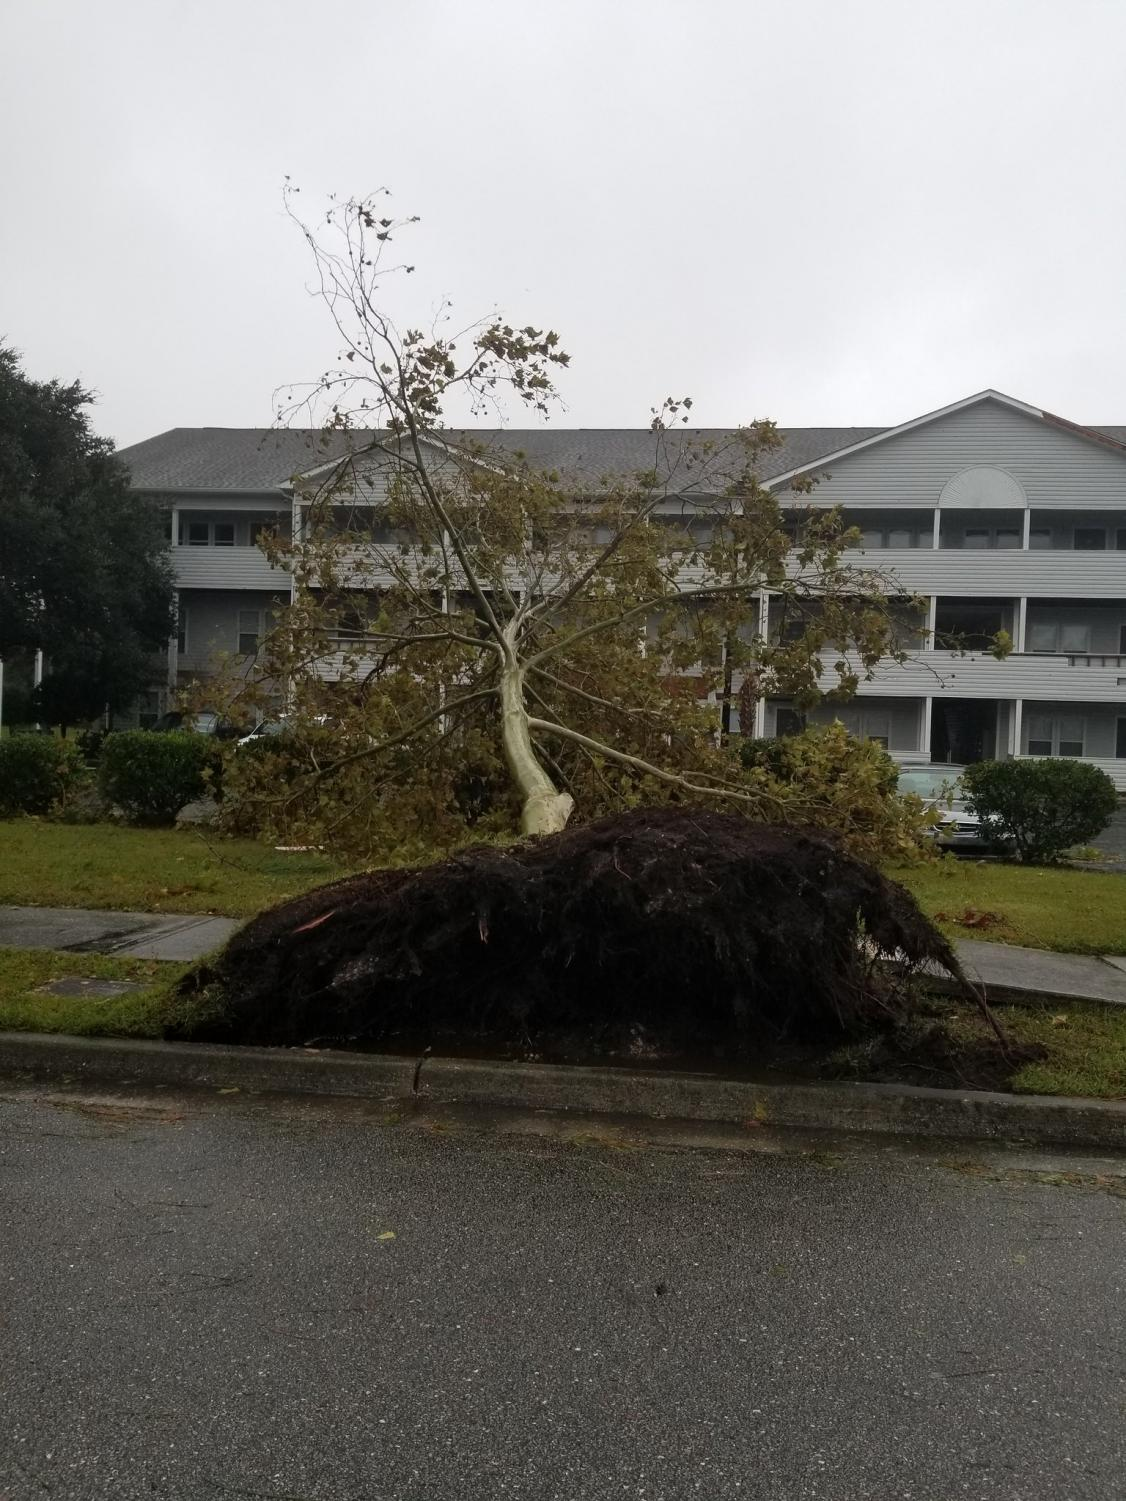 An+uprooted+tree+lies+still+next+to+a+road+in+the+Hawthorne+at+New+Center+apartment+complex+off+New+Center+Drive+in+Wilmington+as+a+result+of+high+winds+and+rain+brought+by+Hurricane+Florence.